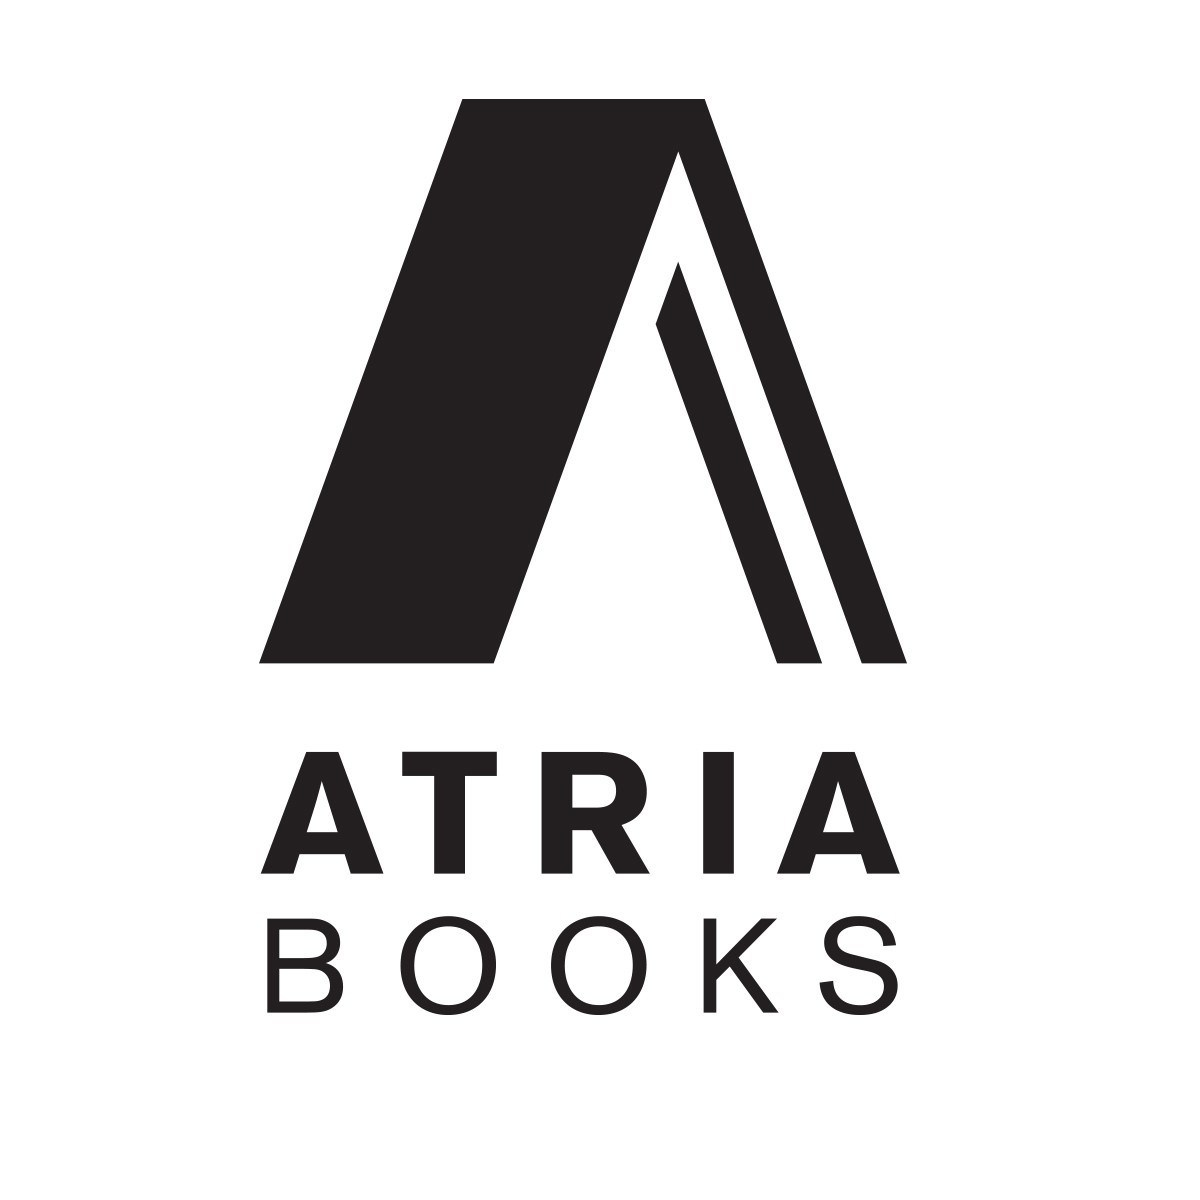 Atria Books Makes Seven Books Available For Complimentary